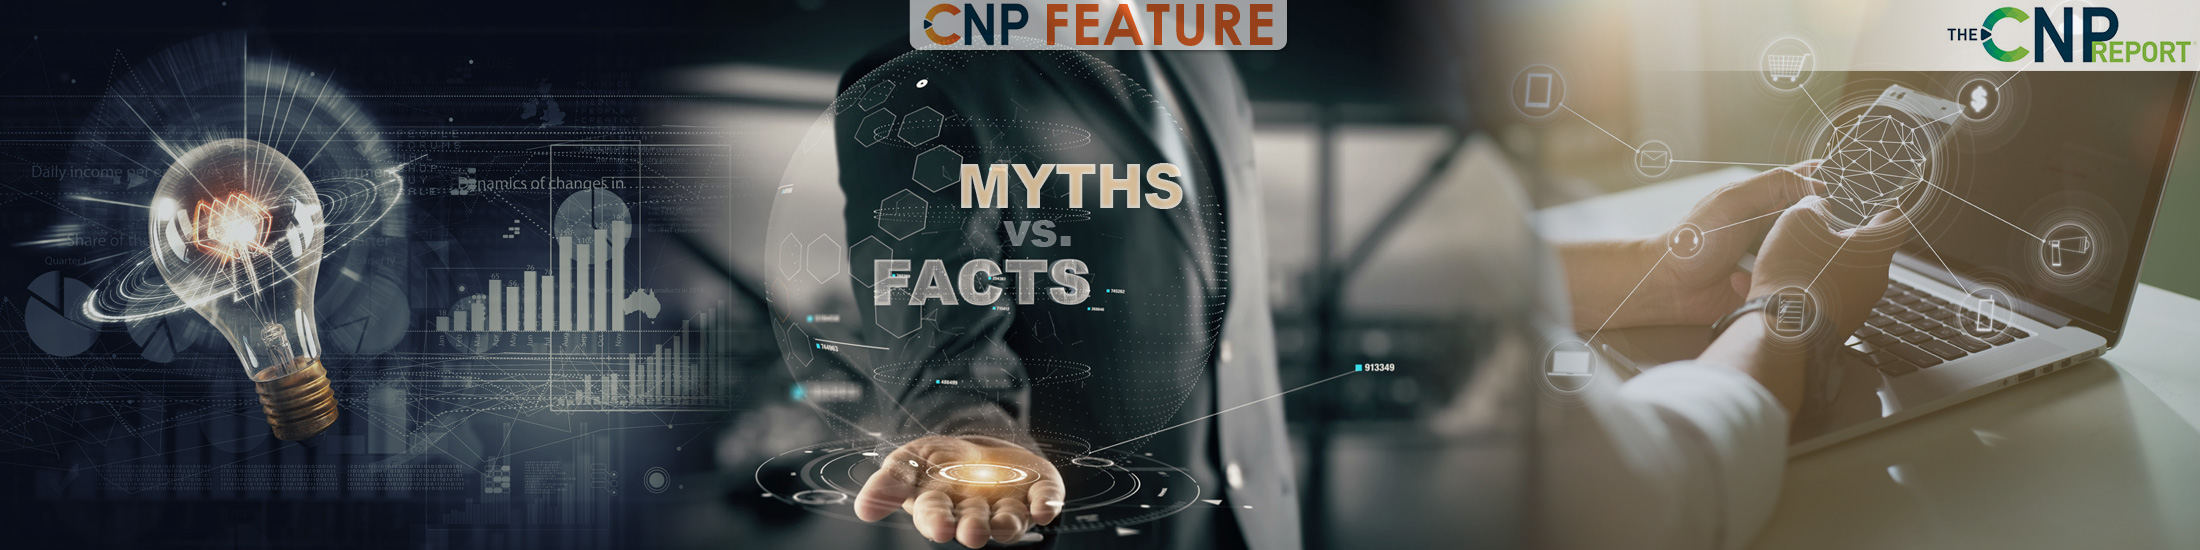 3 Cross-Border E-Commerce Myths Debunked